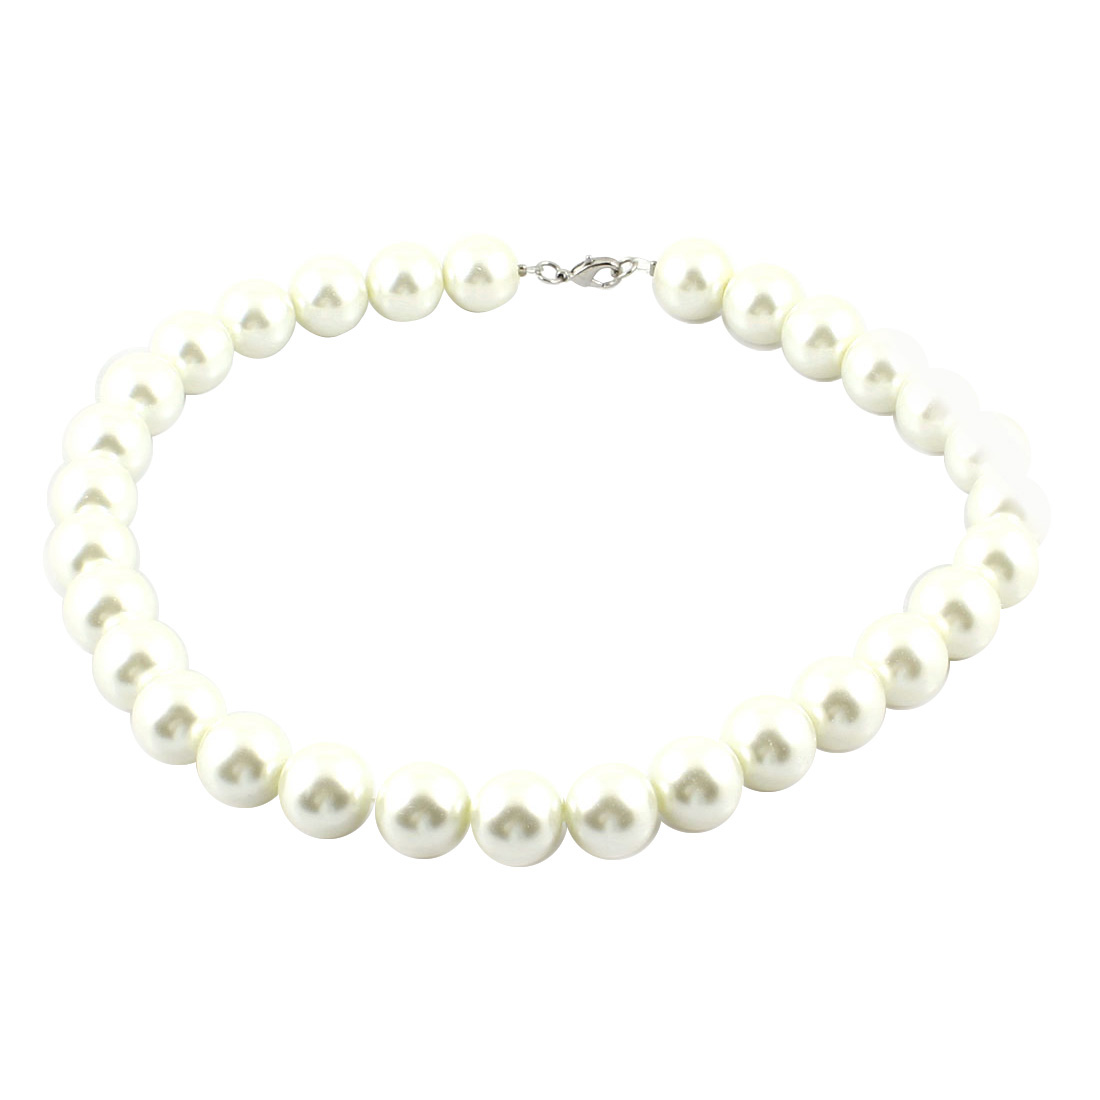 "Women Off White Imitation Pearl Lobster Clasp Necklace Jewelry 16.5"" Girth"